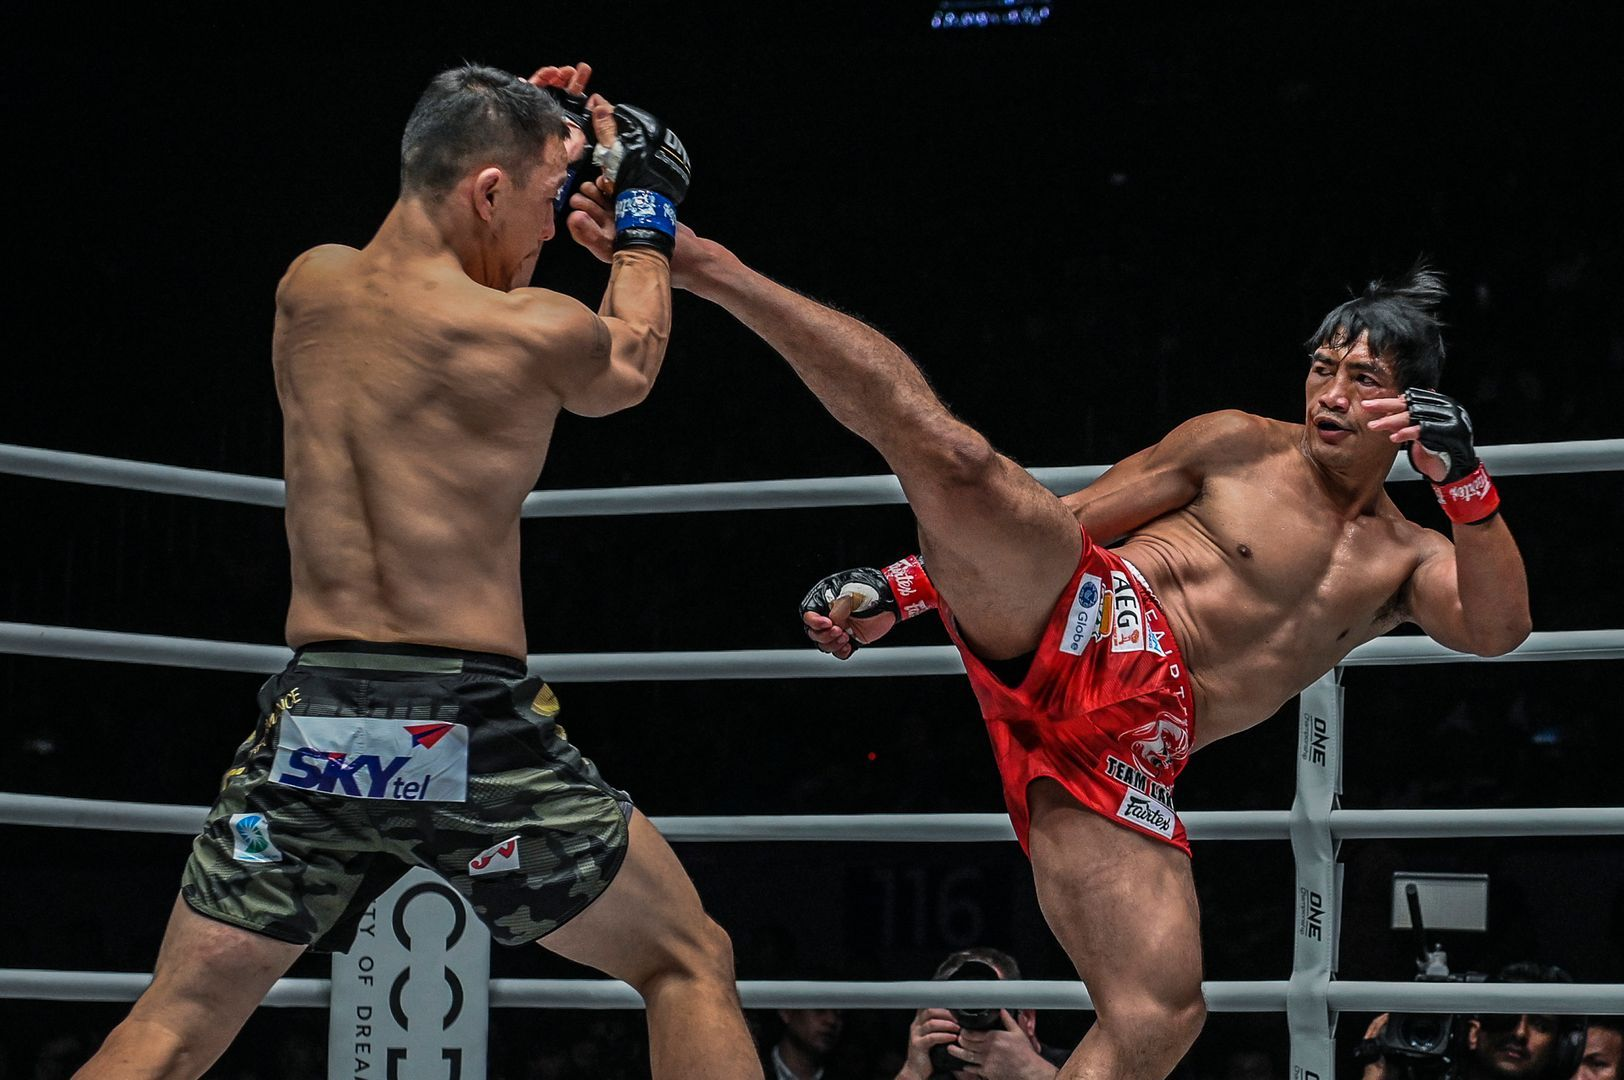 Eduard Folayang VS Amarsanaa Tsogookhuu at ONE MASTERS OF FATE